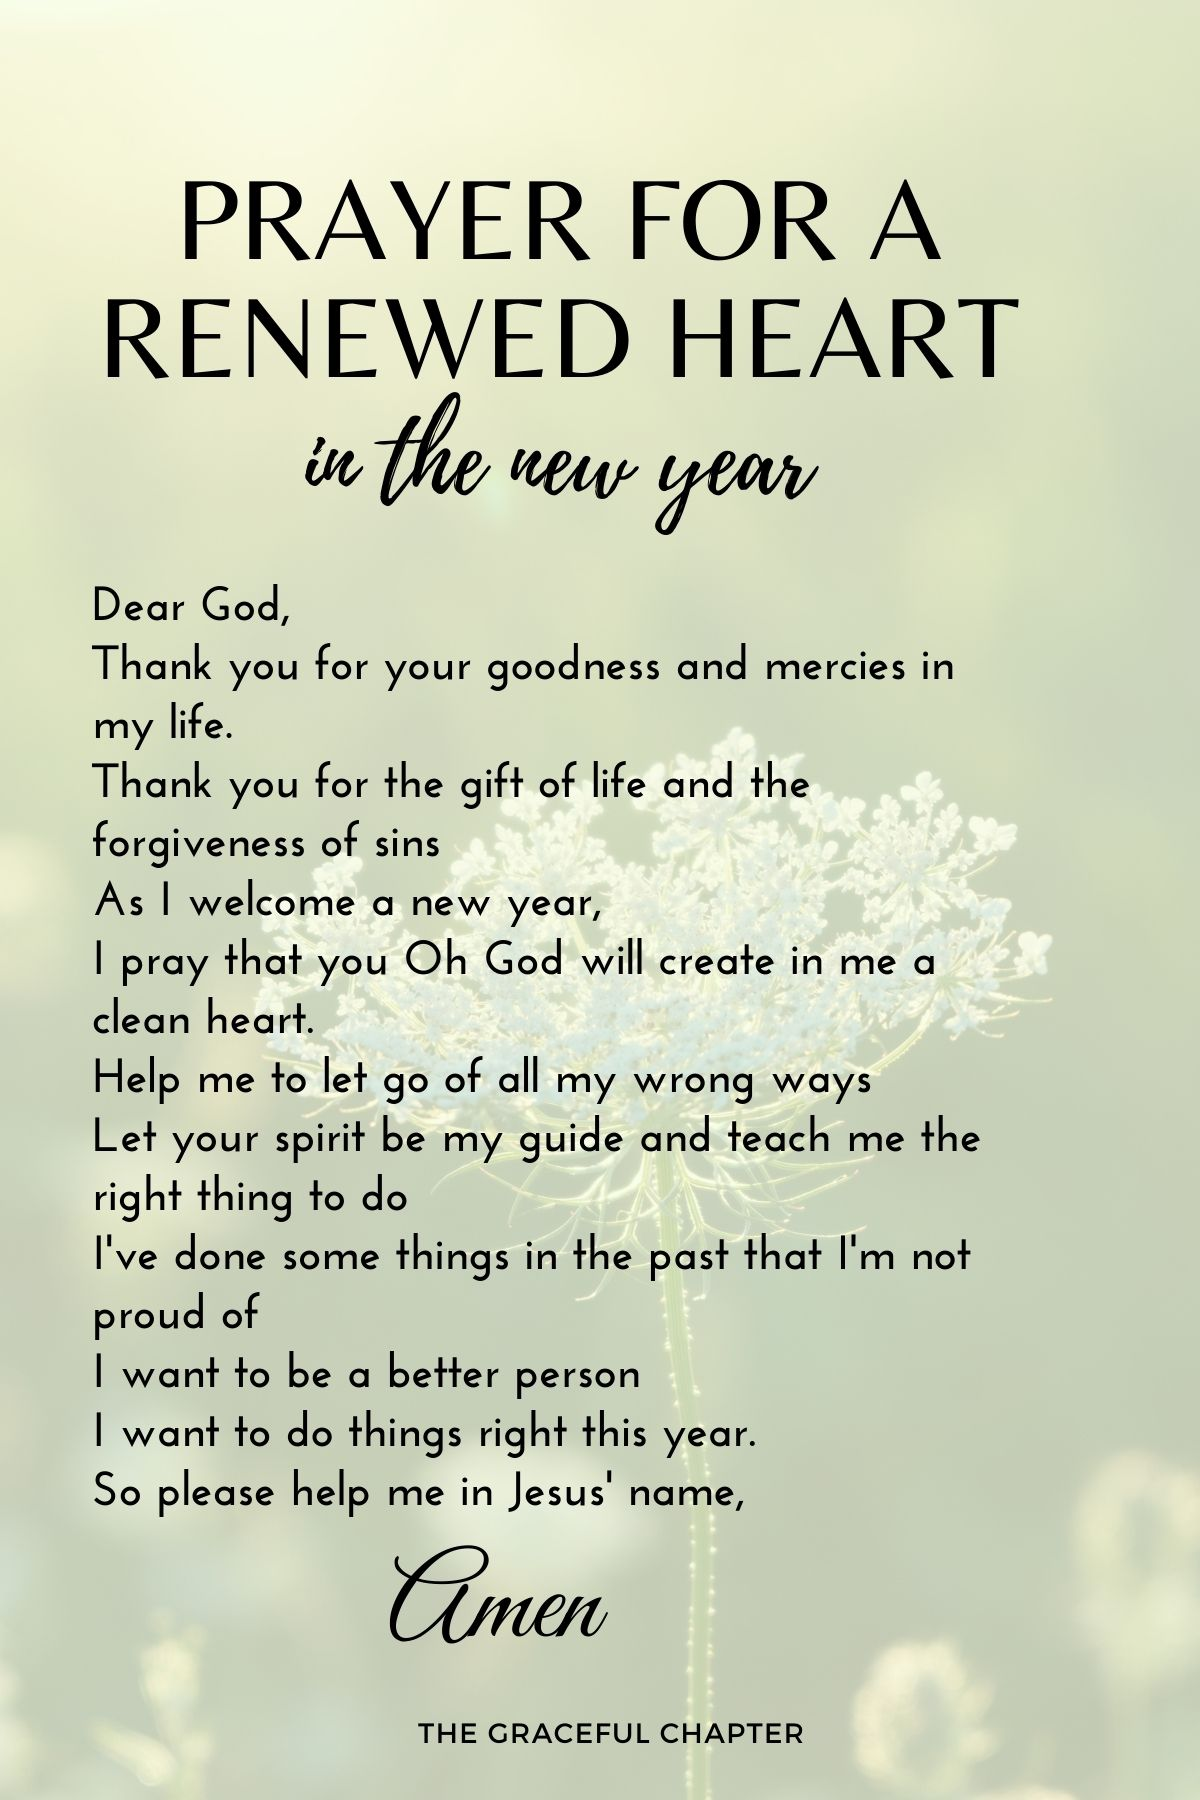 Prayer for a renewed heart in the new year